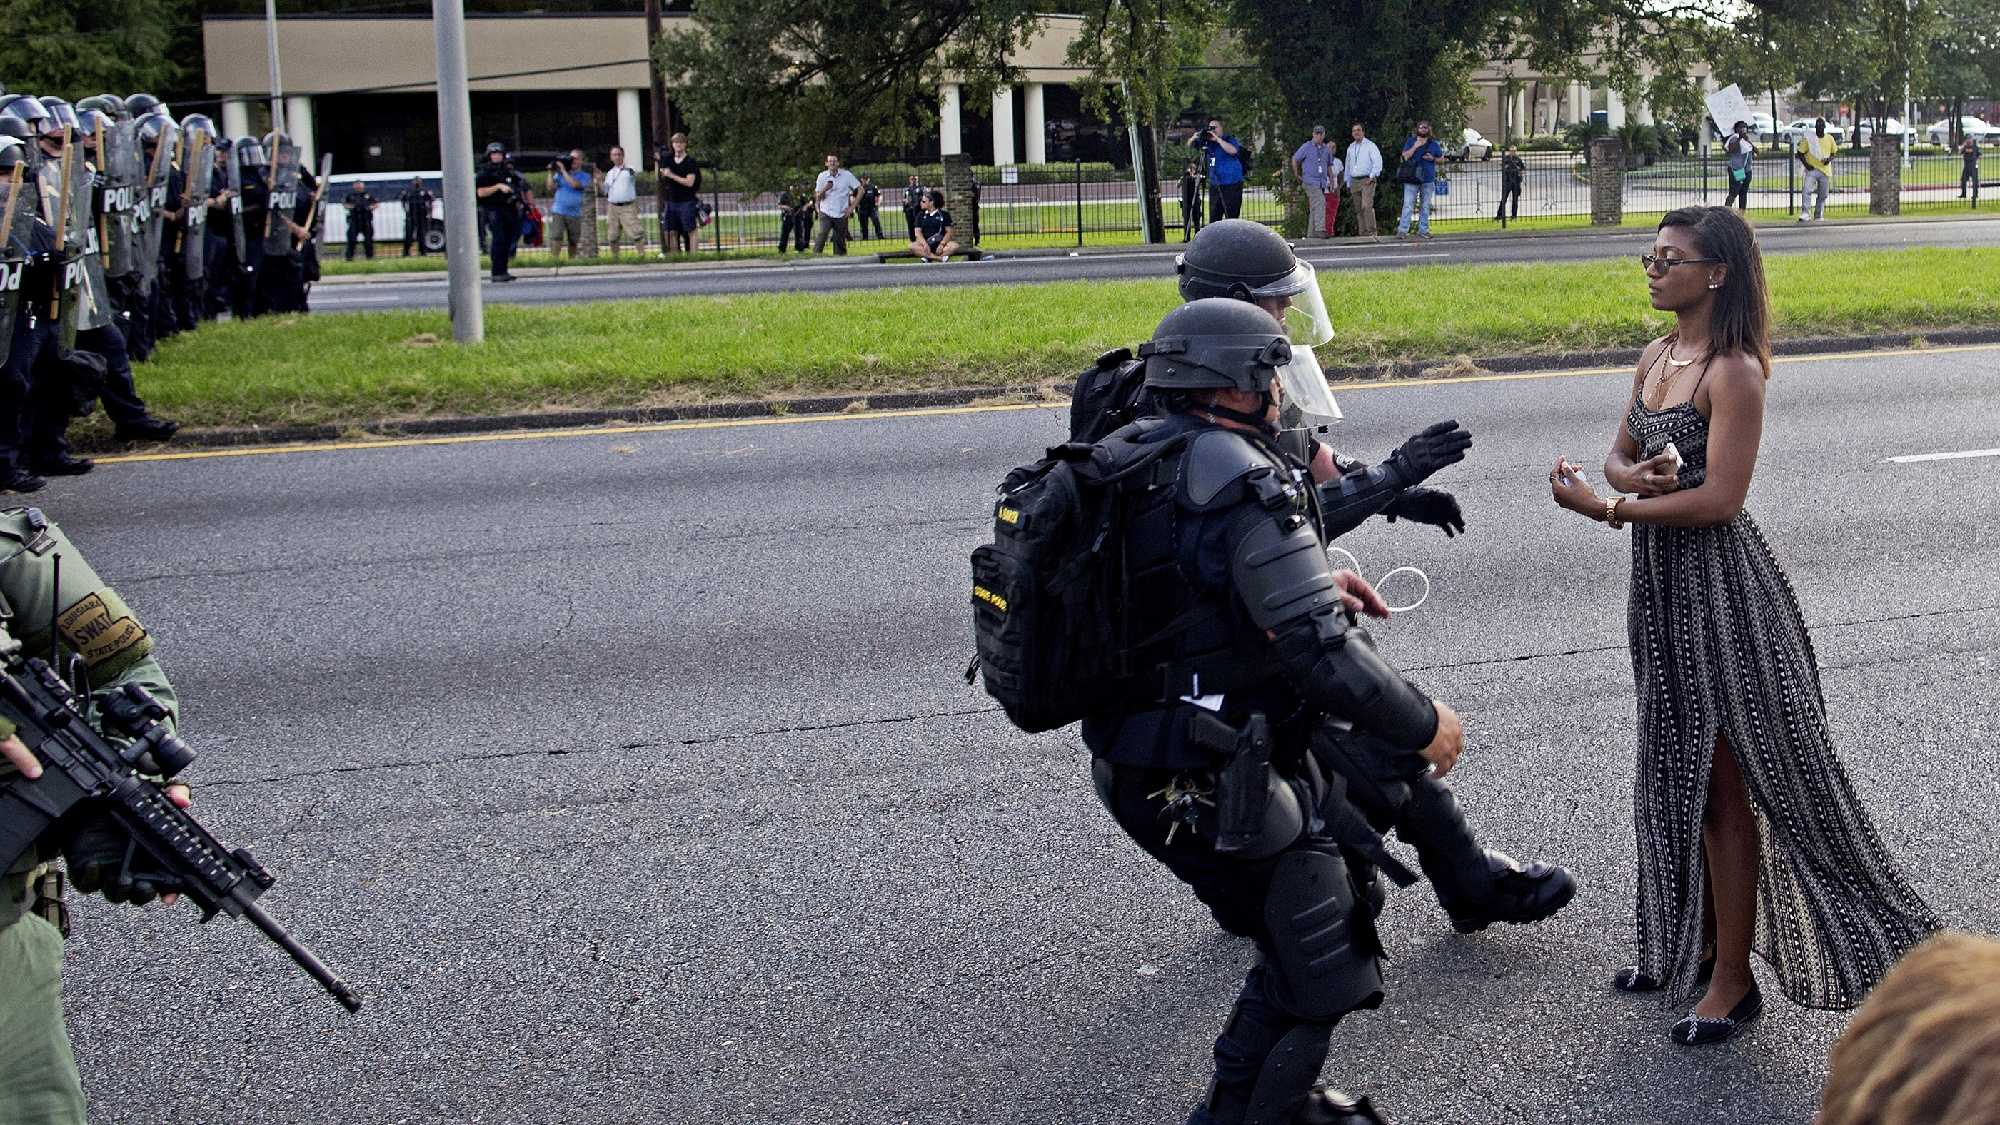 This is another view of the viral image of a protester being confronted by police officers in riot gear in front of the the Baton Rouge Police Department Headquarters in Baton Rouge, La., July 9, 2016.  AP Photo/Max Becherer